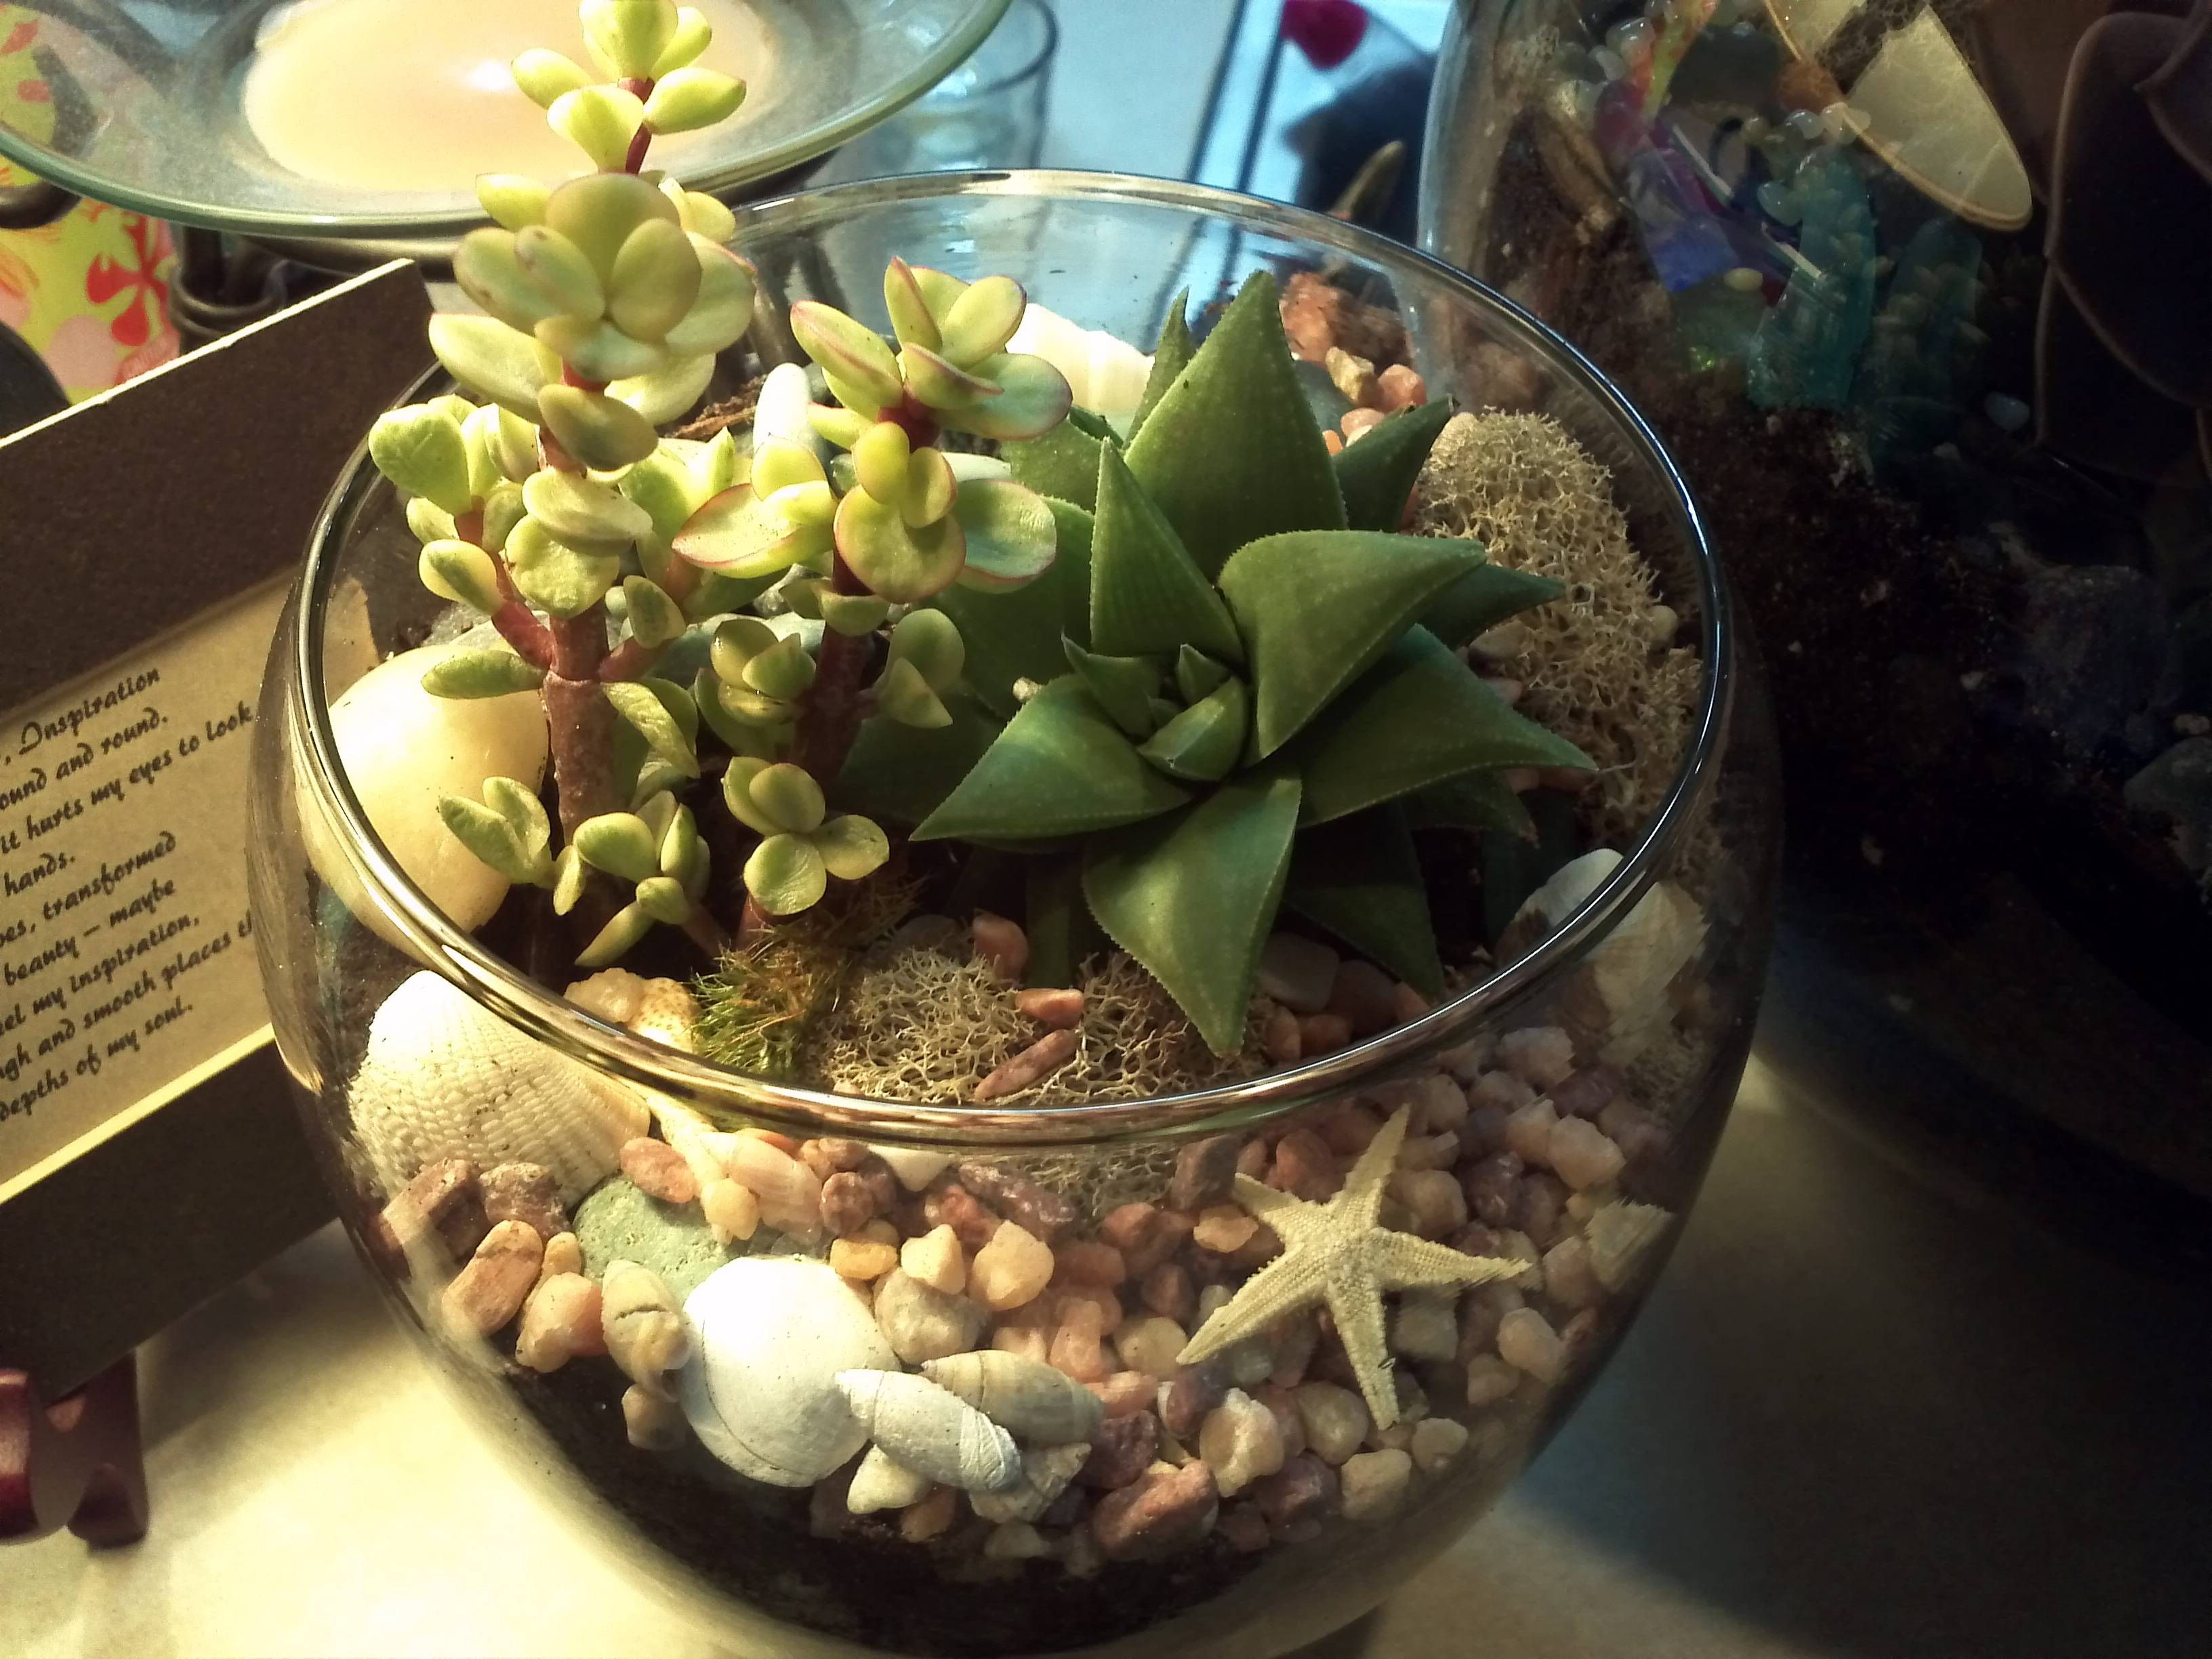 Small fishbowl my terrariums pinterest fishbowl and terraria